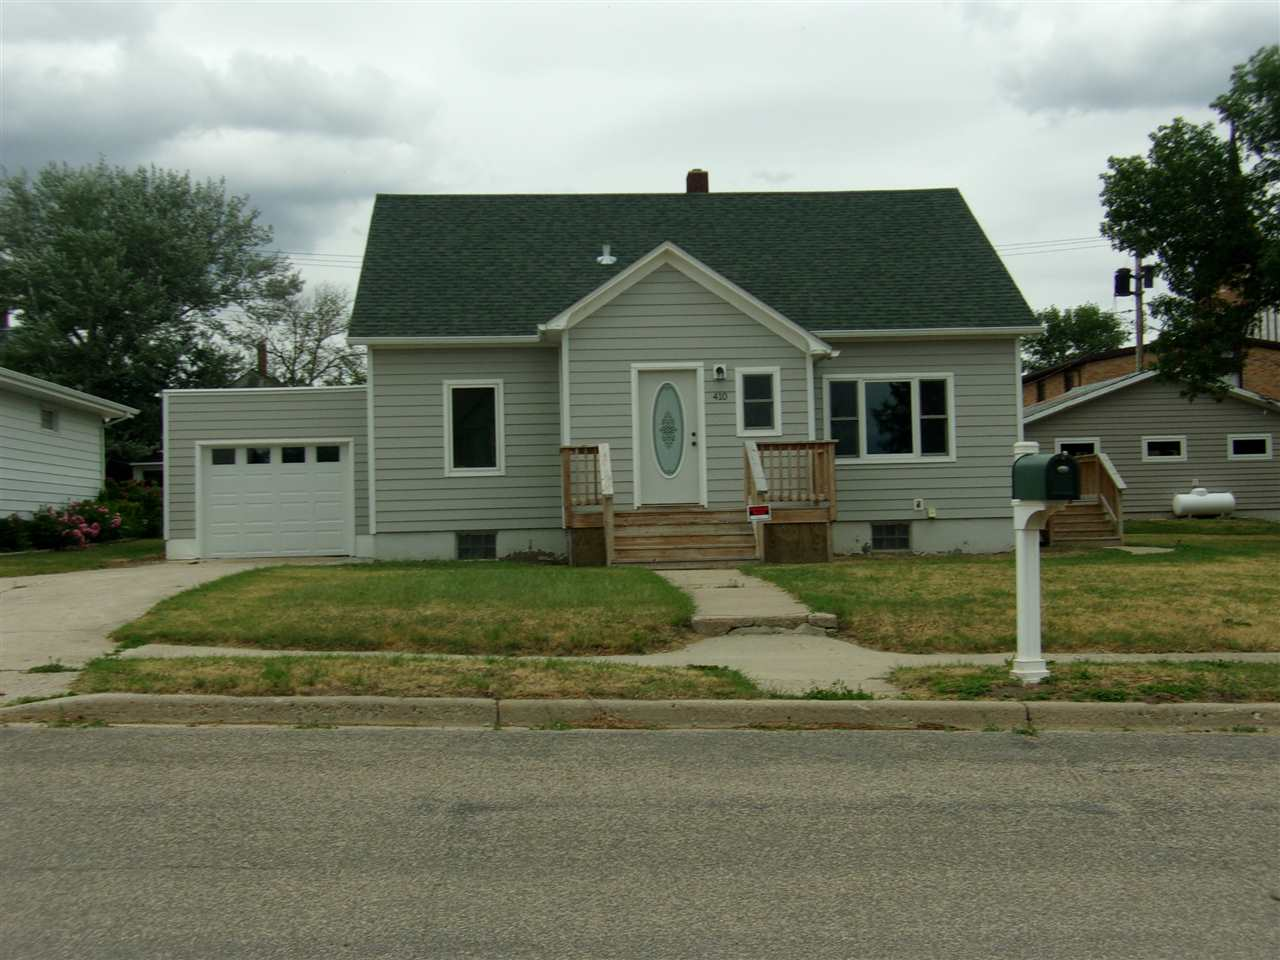 410 NW 1st Ave NW, Kenmare, ND 58746